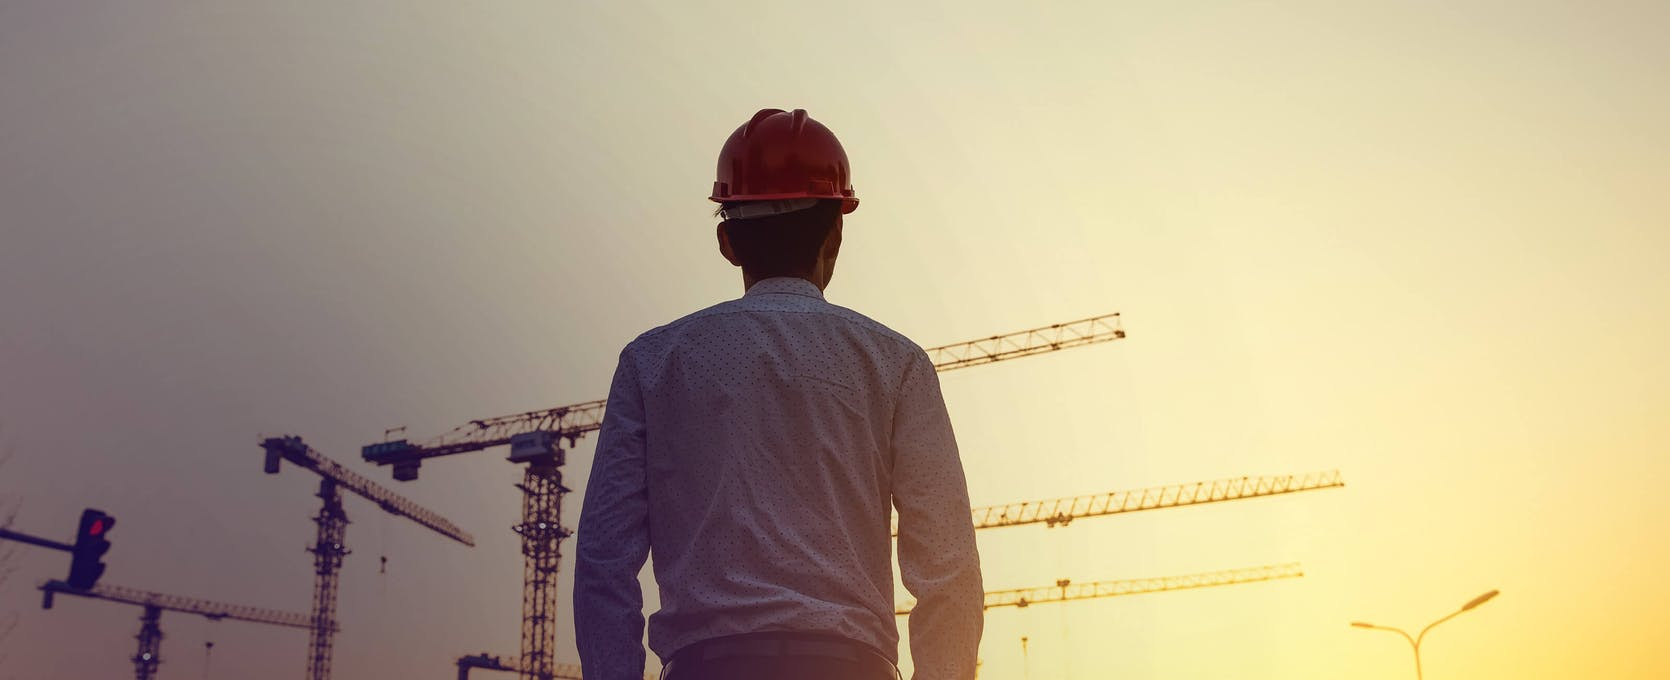 Man in a hard hat looking out at a construction site at sunset